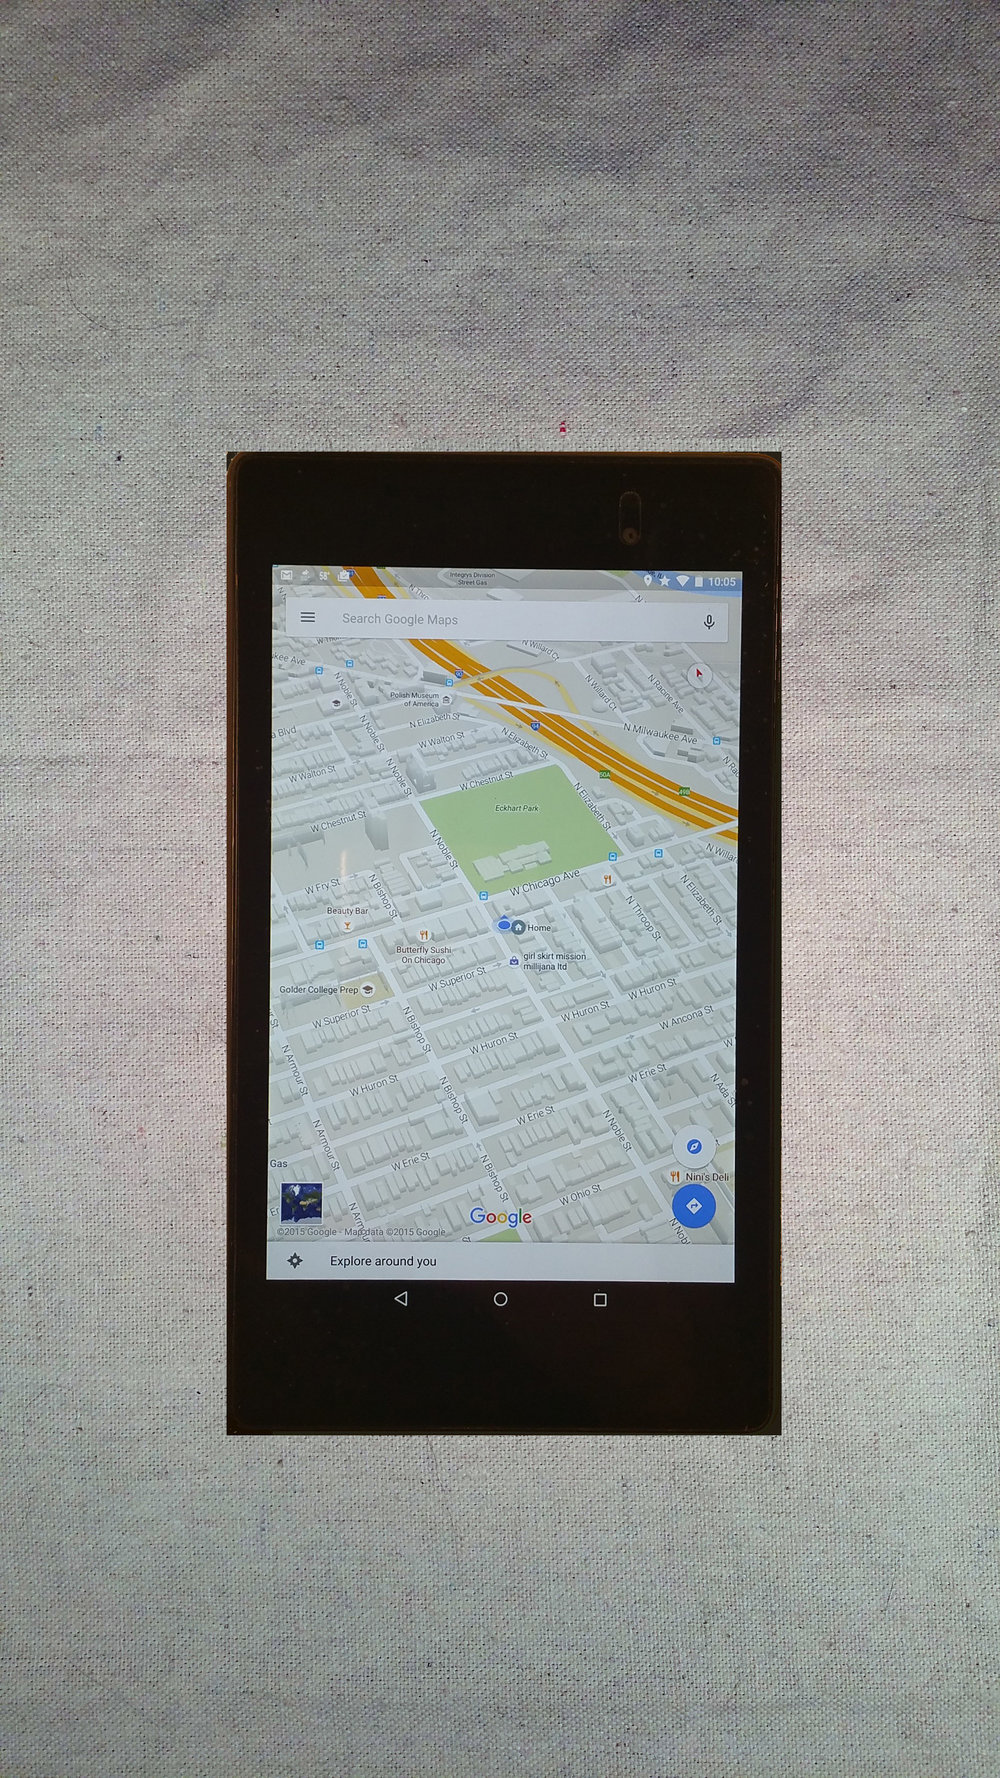 I sent my Nexus 7 Tablet home a few months into the trip.